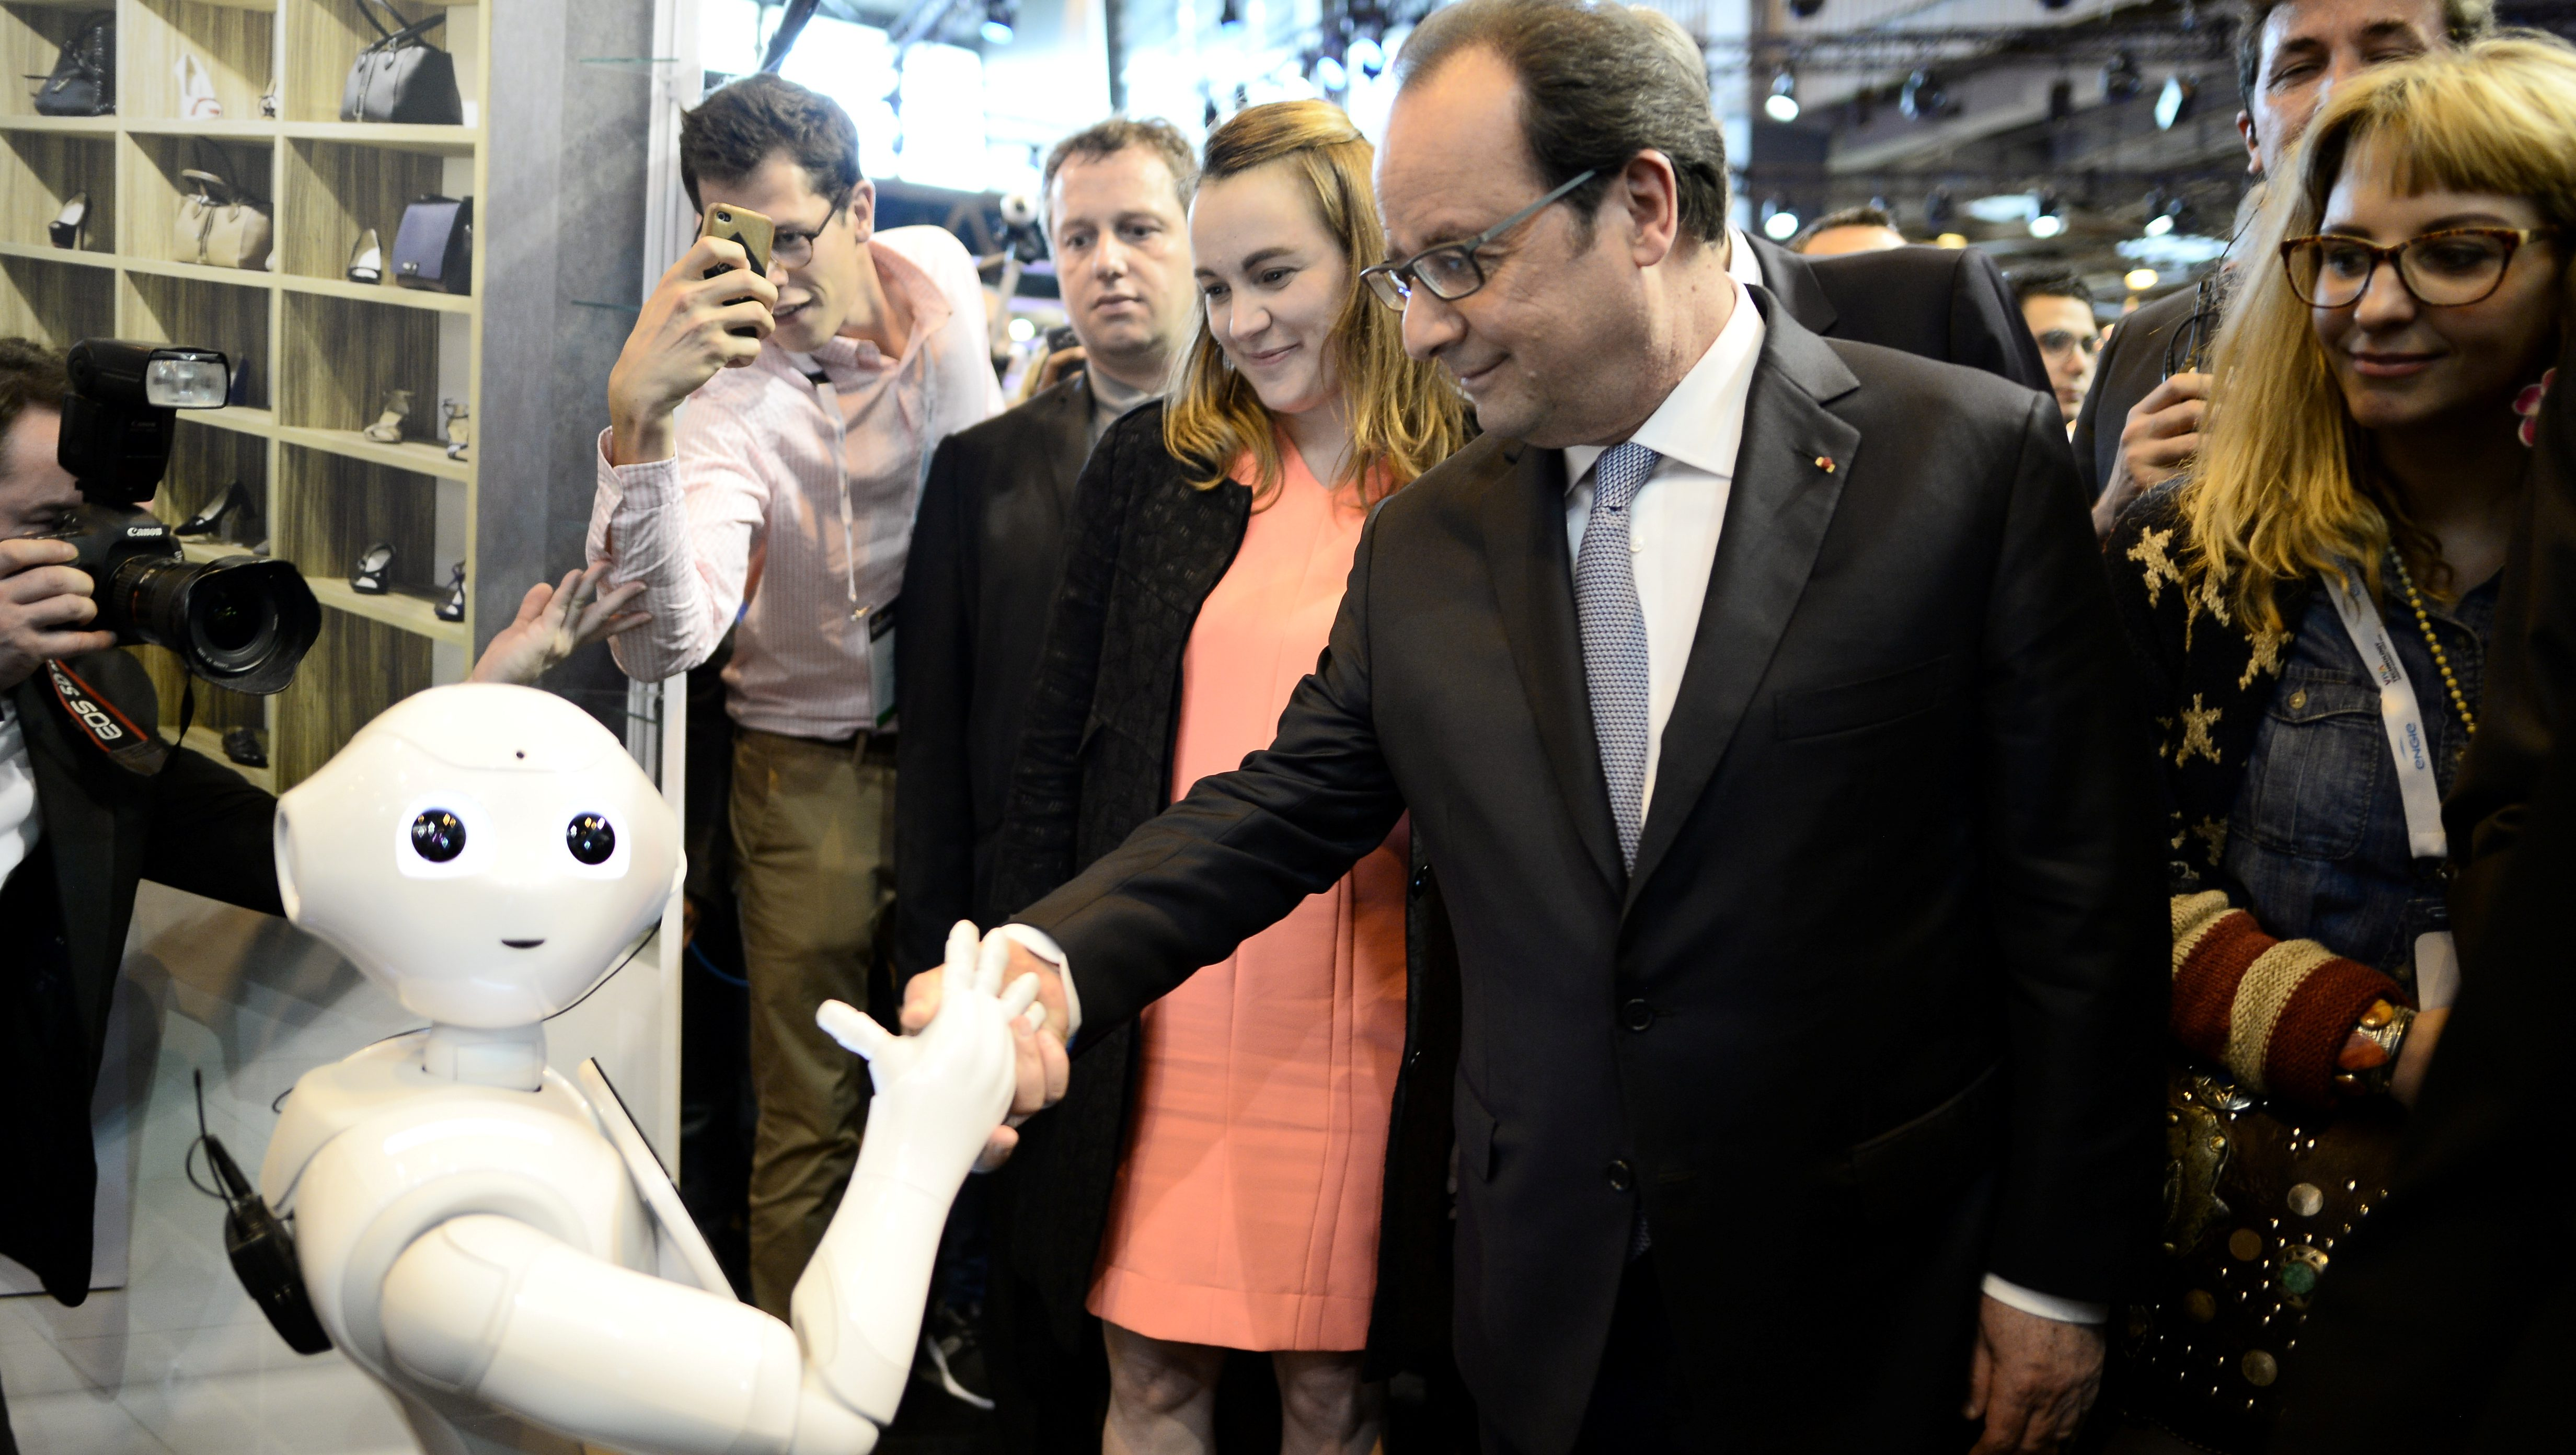 French President Francois Hollande (R) shakes hands with the IBM Watson powered robot during his visit to the Viva Technology event in Paris, France, June 30, 2016. REUTERS/Stephane de Sakutin/Pool  - RTX2J1E3